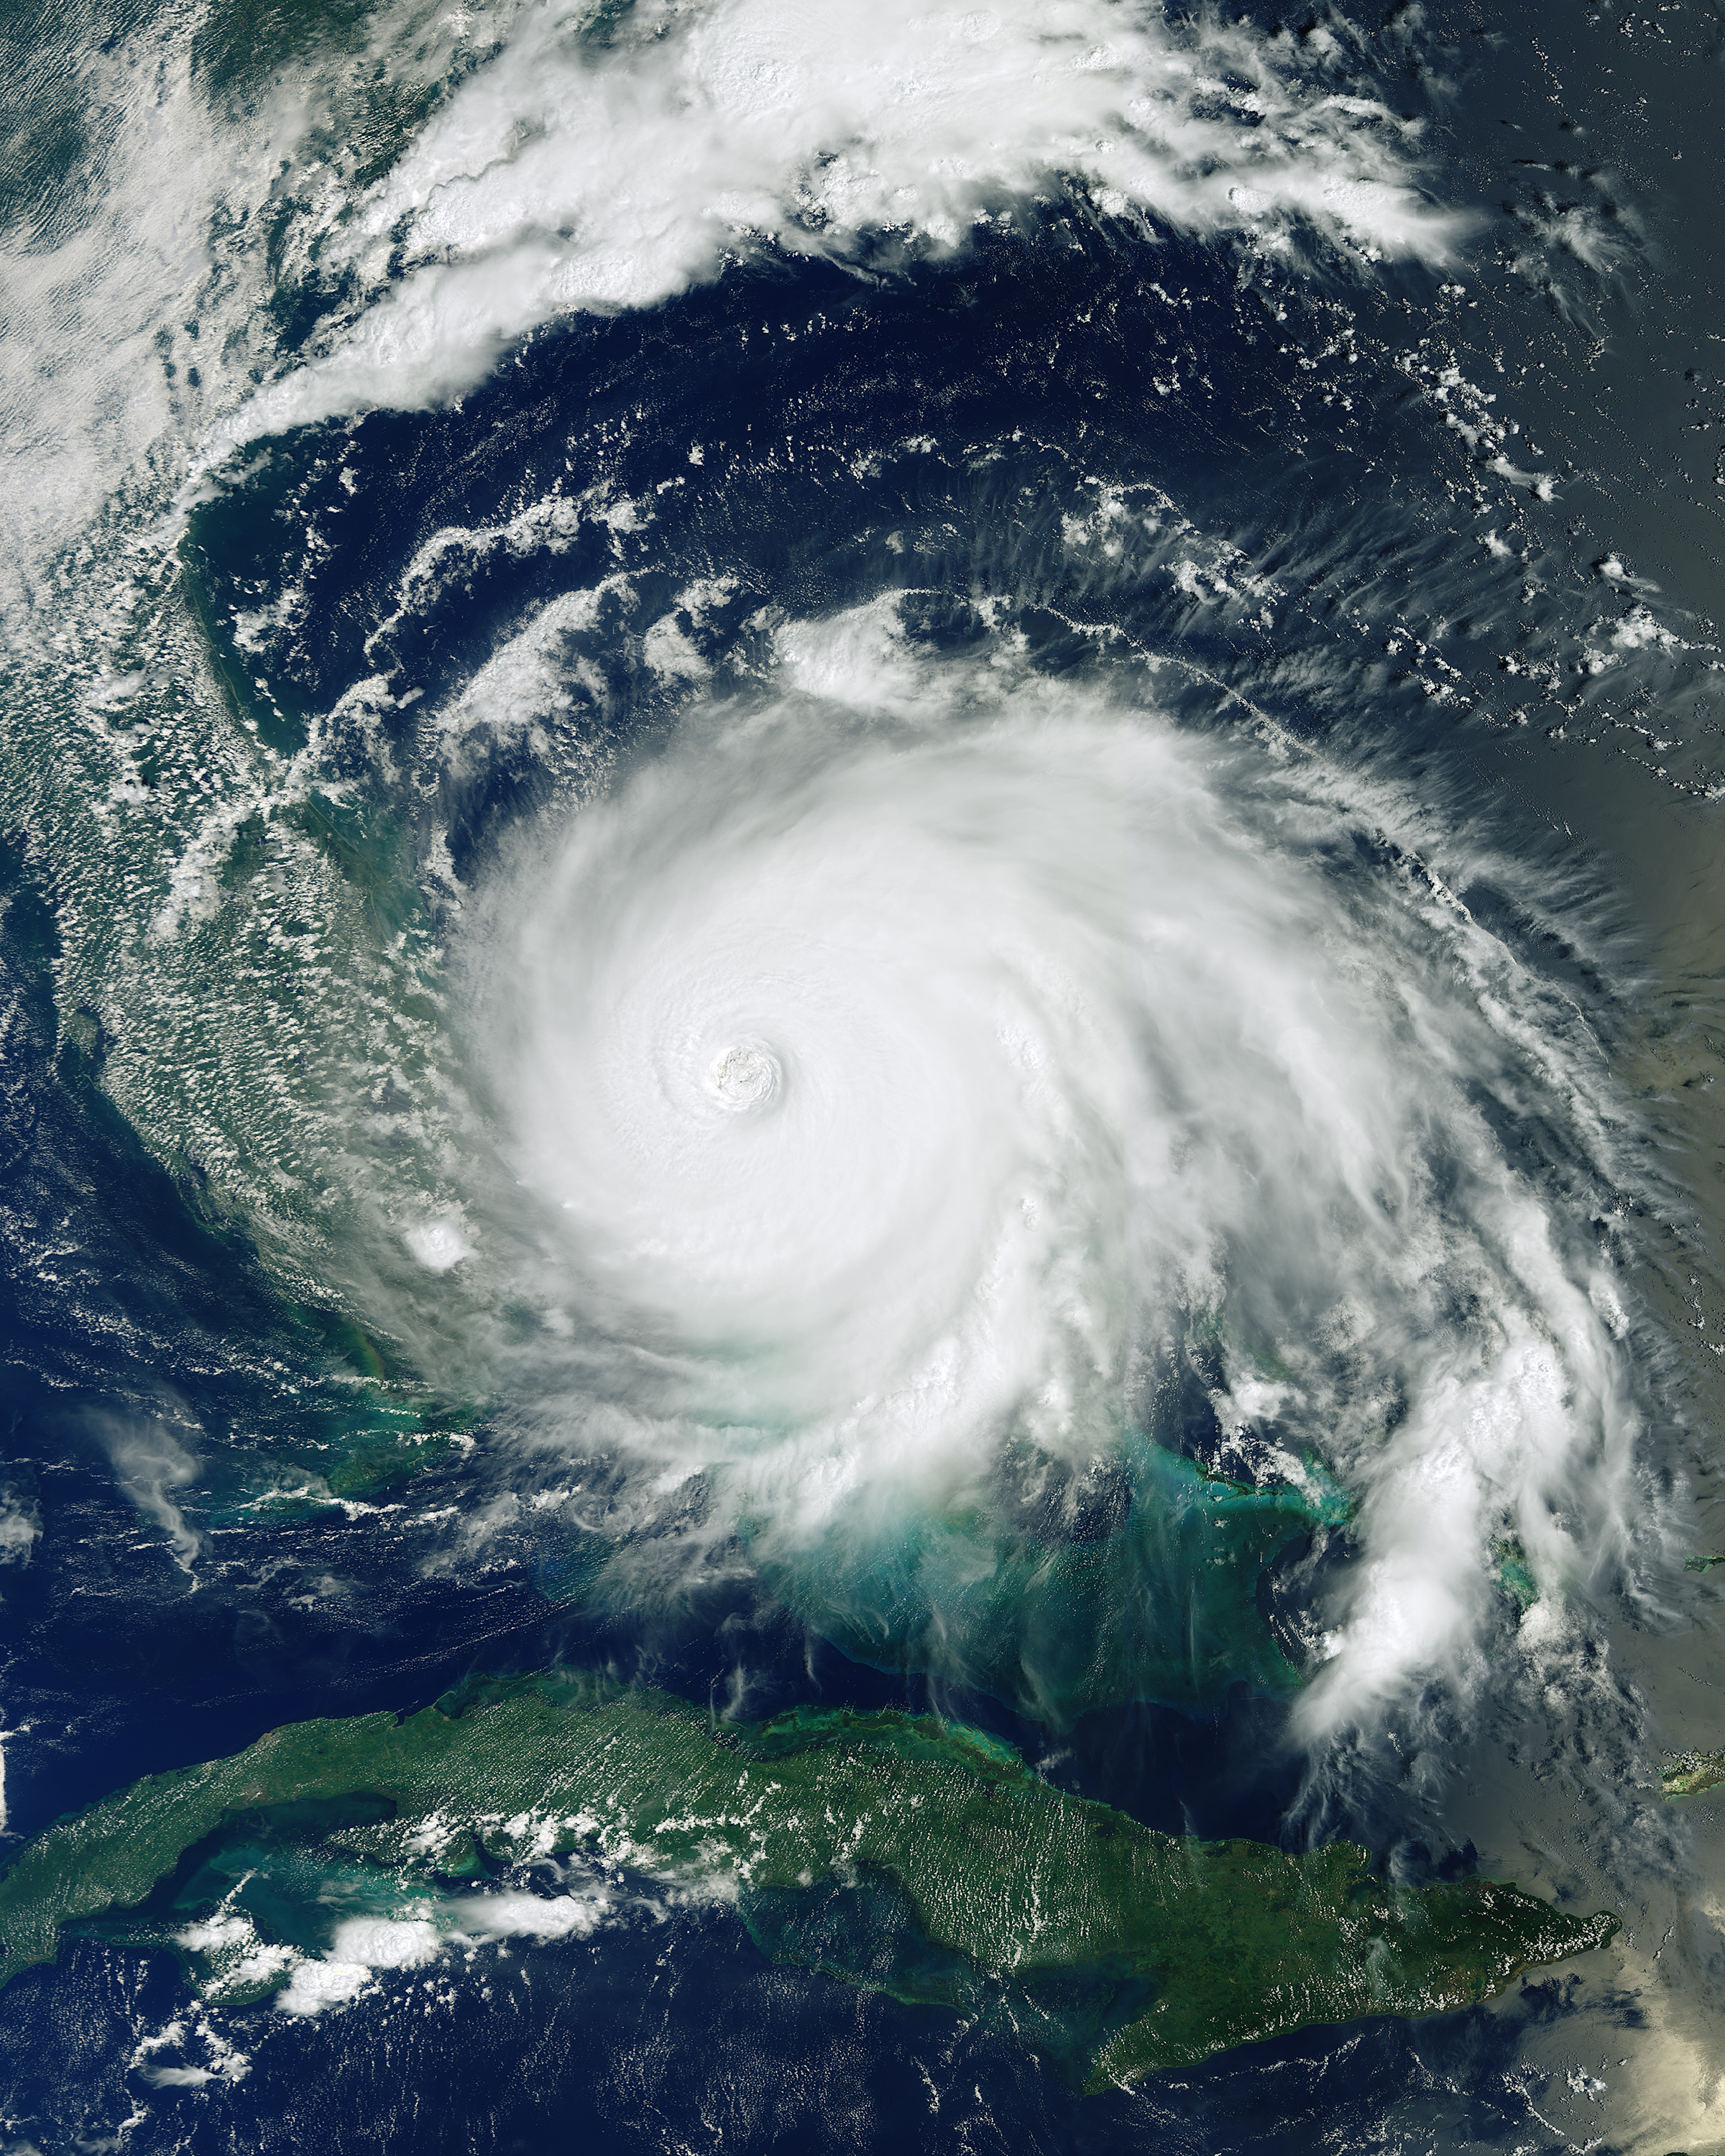 This image, captured by the European Space Agency's Copernicus Sentinel-3 satellite, shows Hurricane Dorian pummeling the Bahamas on Monday, September 2. Having reached Category 5 intensity with sustained winds of 185 mph (295 km/h), the storm is reported to be one of the most powerful Atlantic hurricanes on record. It is currently a Category 2 hurricane and is expected to continue up the southeastern coast of the United States. Several fatalities have been recorded and numerous homes and infrastructure have been destroyed.  24.250000°, -76.000000°  Source imagery: ESA - European Space Agency